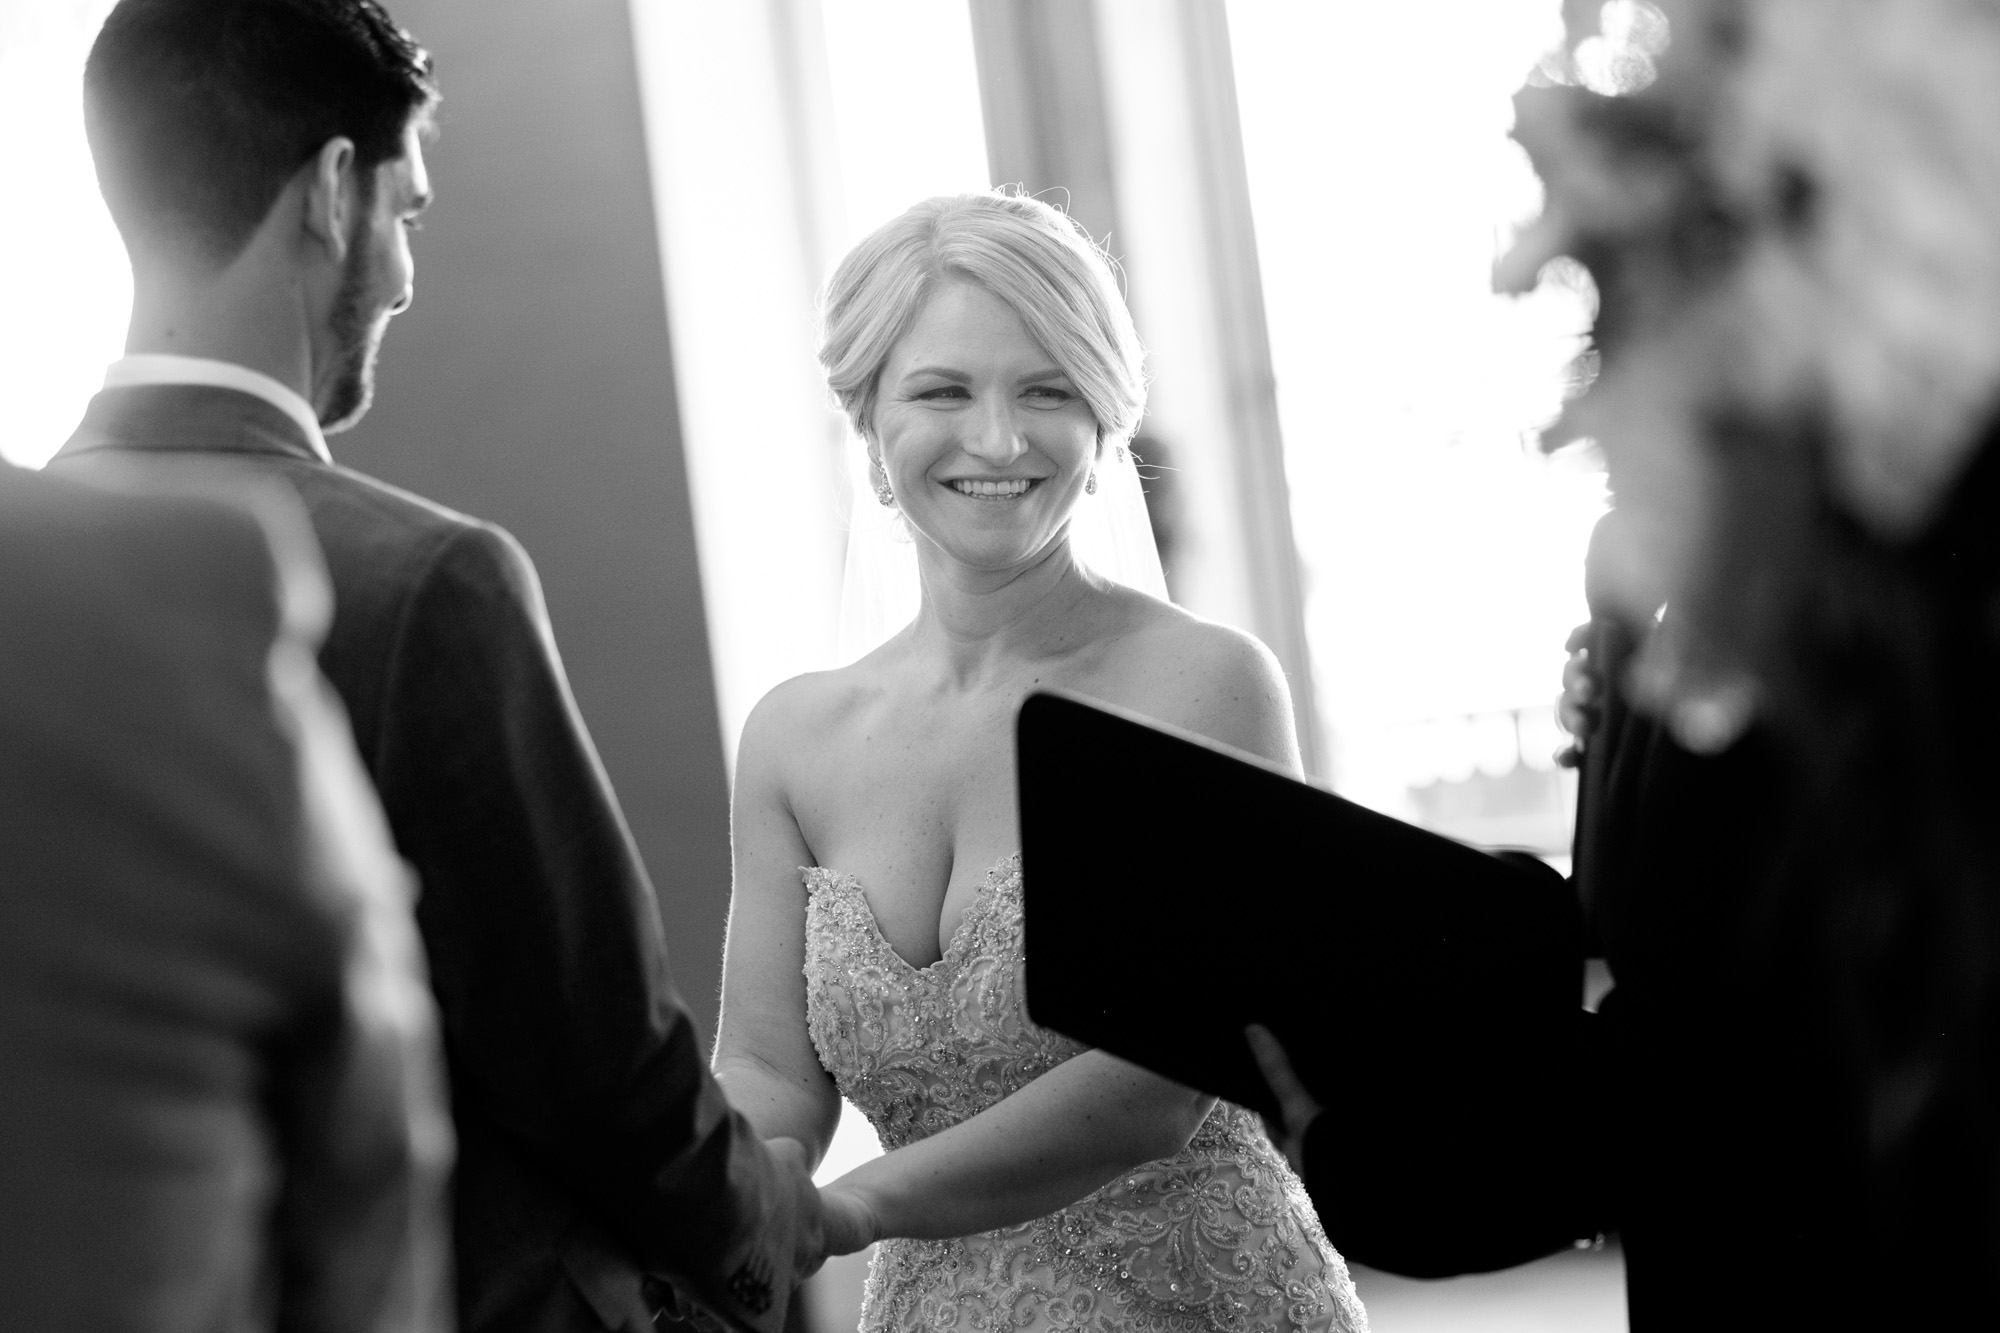 The bride laughs during her wedding ceremony at Whistle Bear in Cambridge, Ontario.